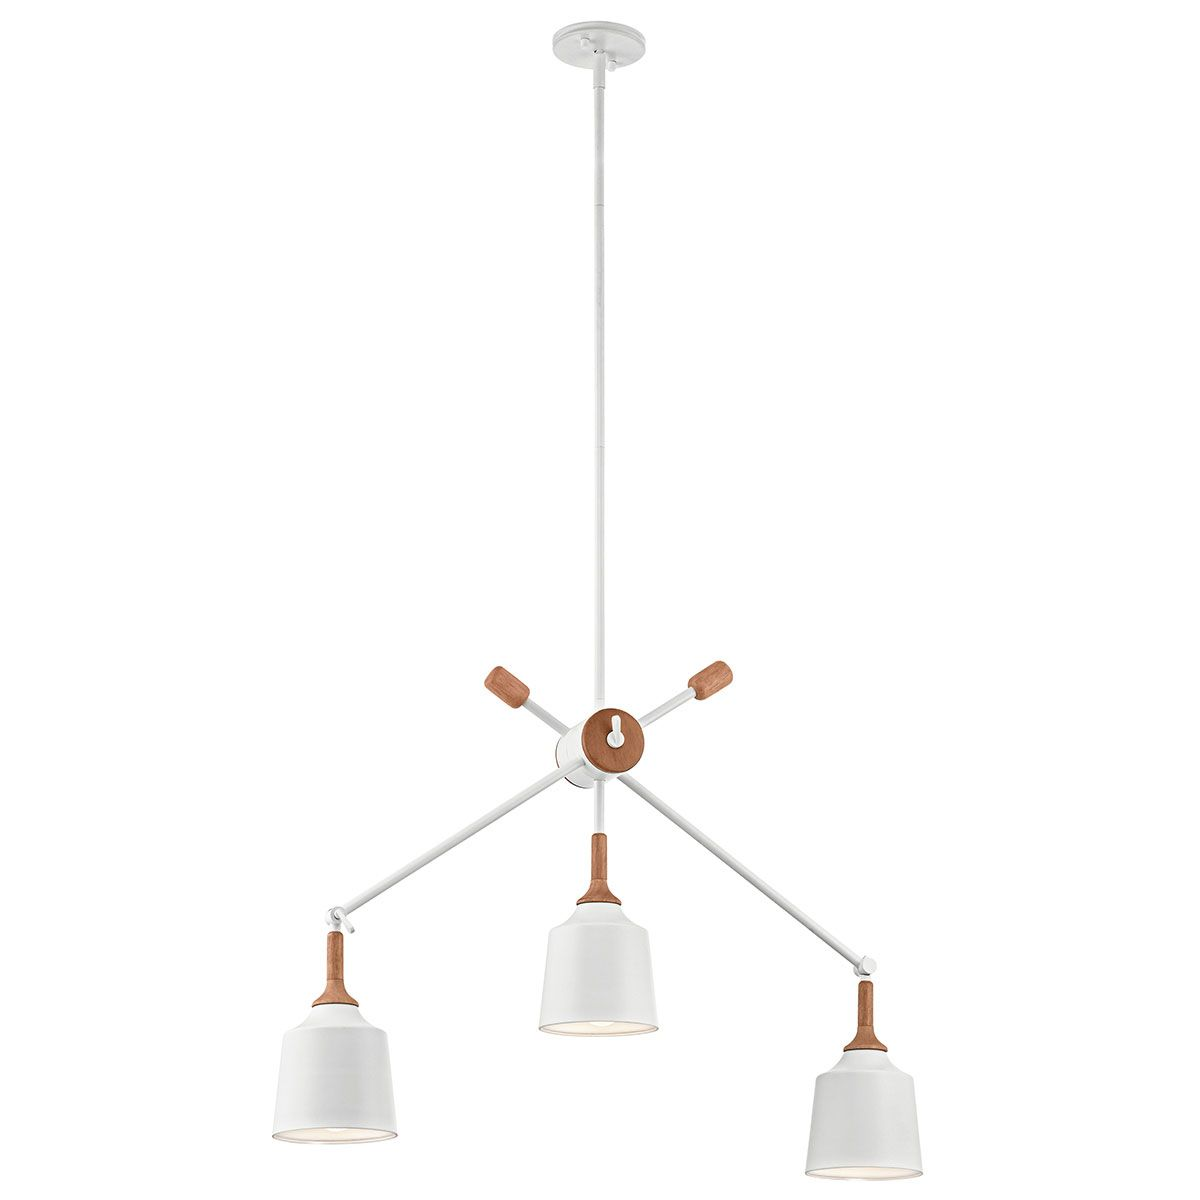 The Danika 3 Light Linear Chandelier Takes Concept Of Mid Century Modern To